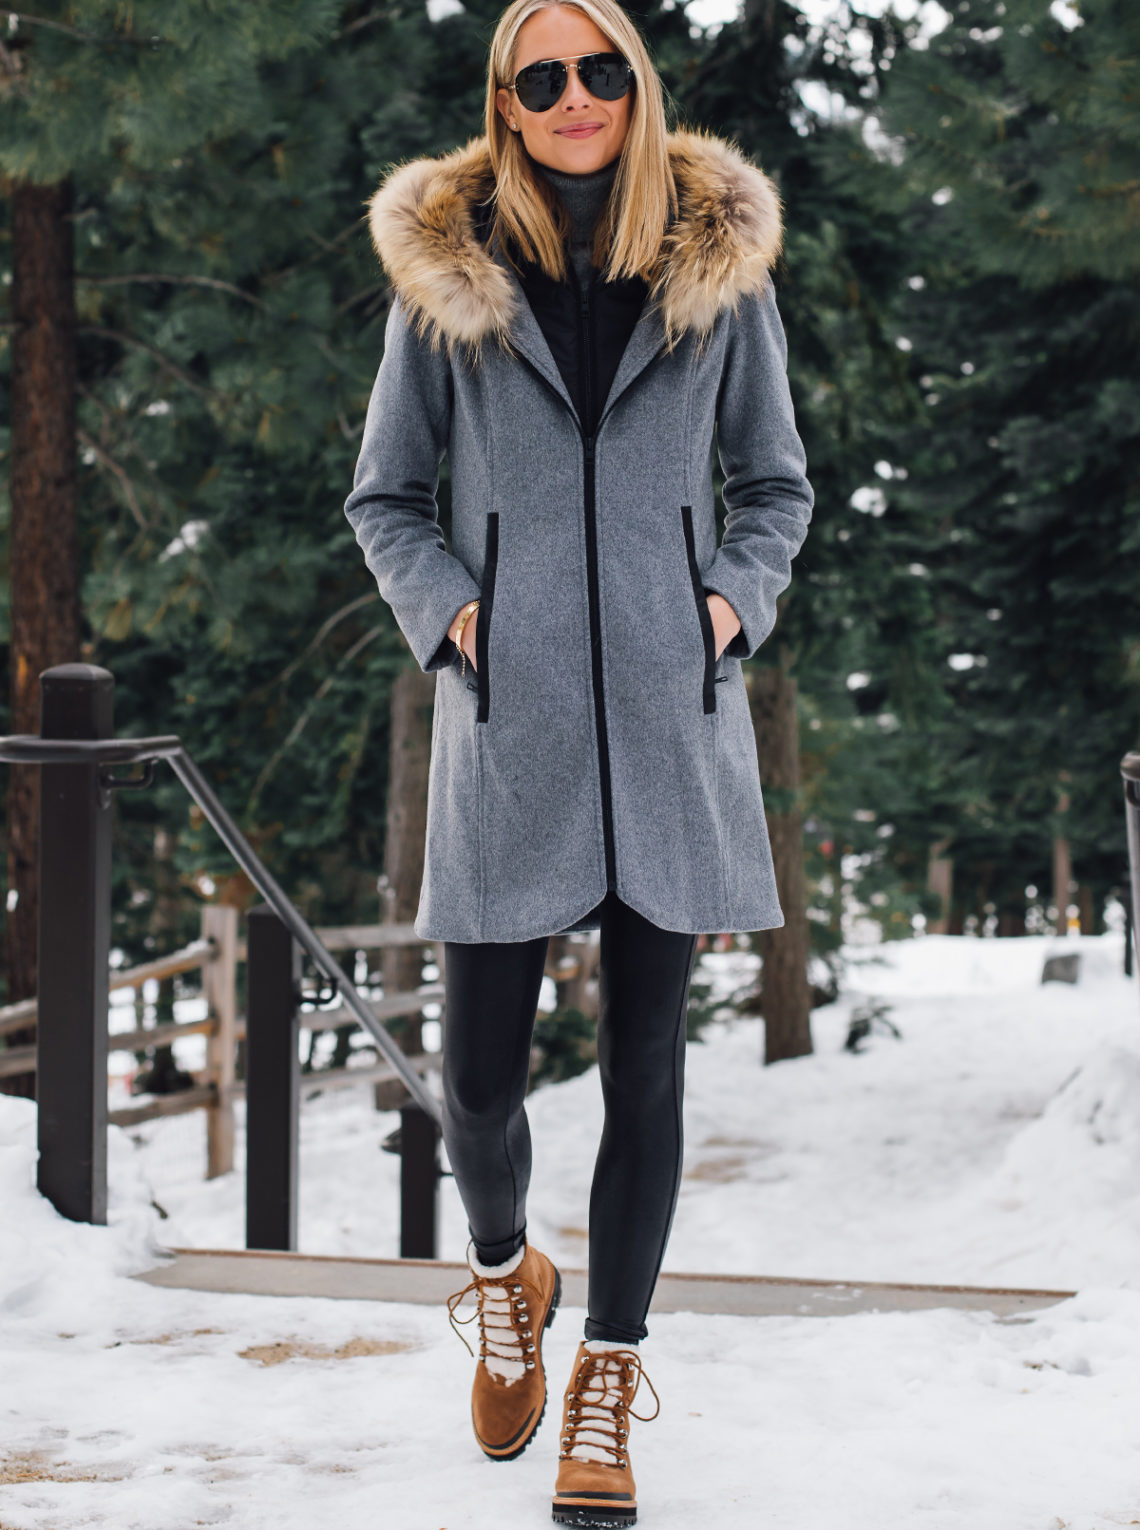 Blonde Woman Wearing Grey Wool Coat with Faux Fur Hood Spanx Black Faux Leather Leggings Marc Fisher Brown Suede Shearling Booties Outfit Fashion Jackson San Diego Fashion Blogger Lake Tahoe Winter Outfit